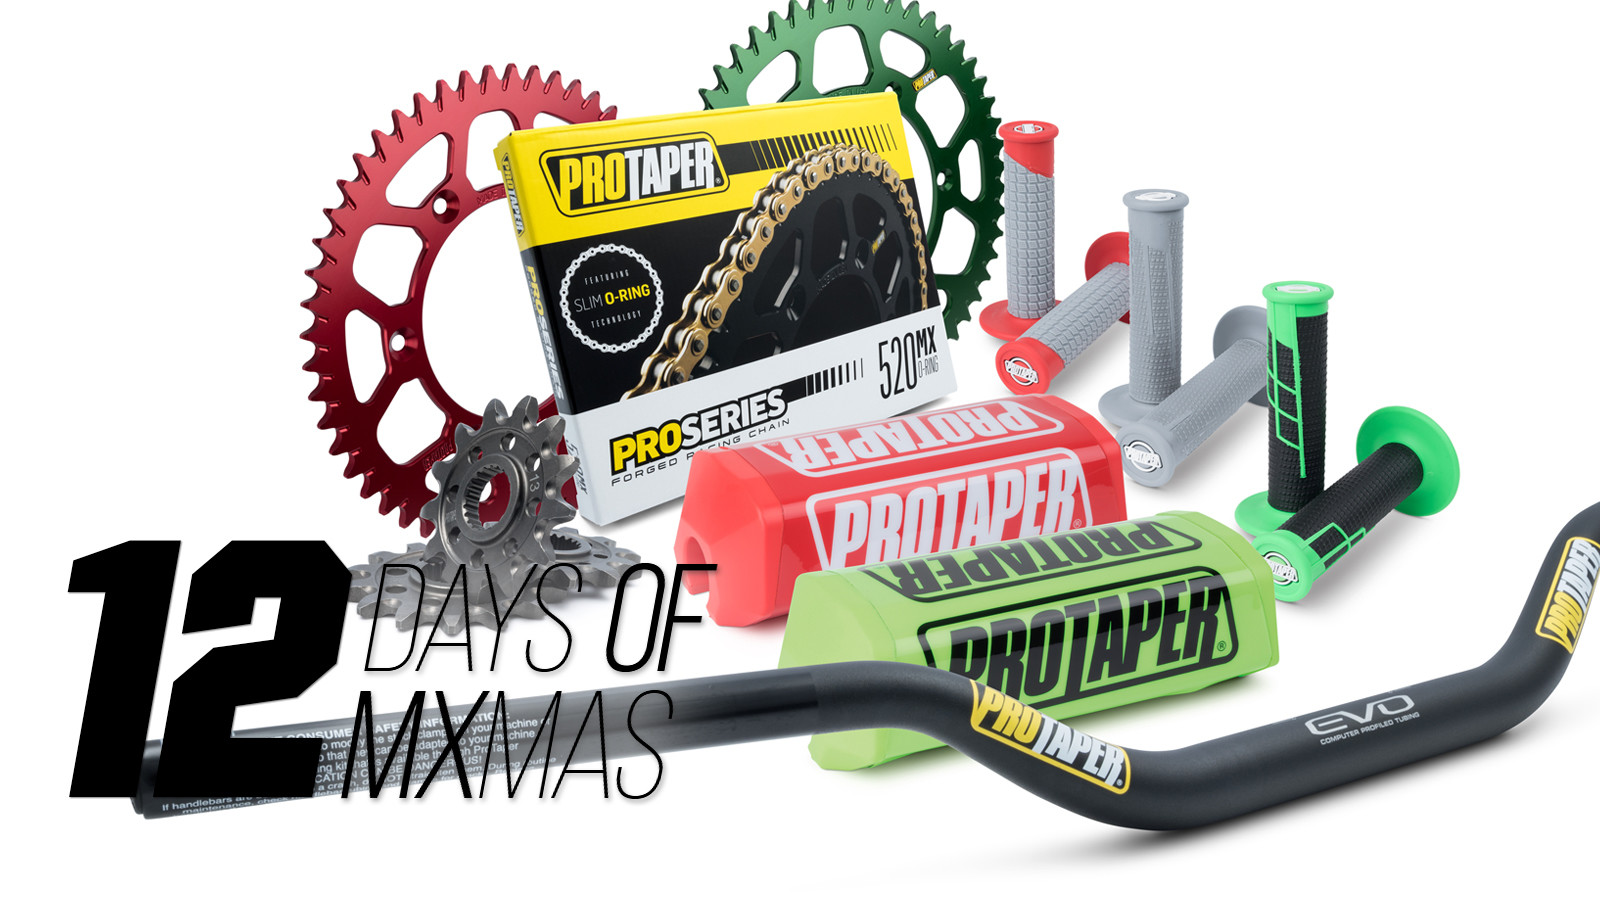 12 Days of MXmas: ProTaper